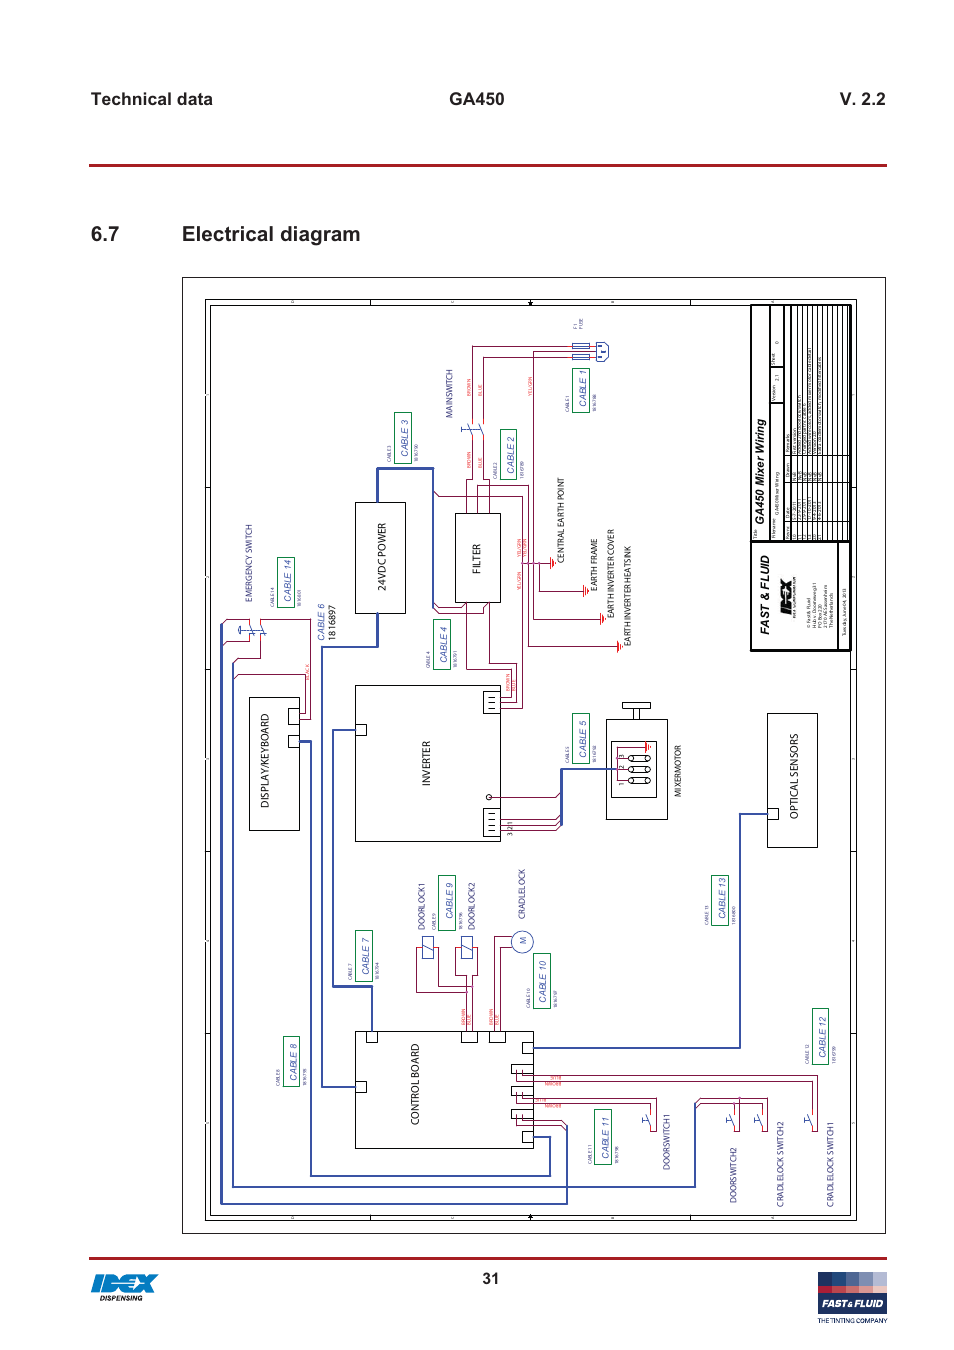 Fa Wiring Diagram Schematics Meyers Snow Plow Schematic 7 Electrical Ga450 Mixer St Fluid Fast Home Diagrams